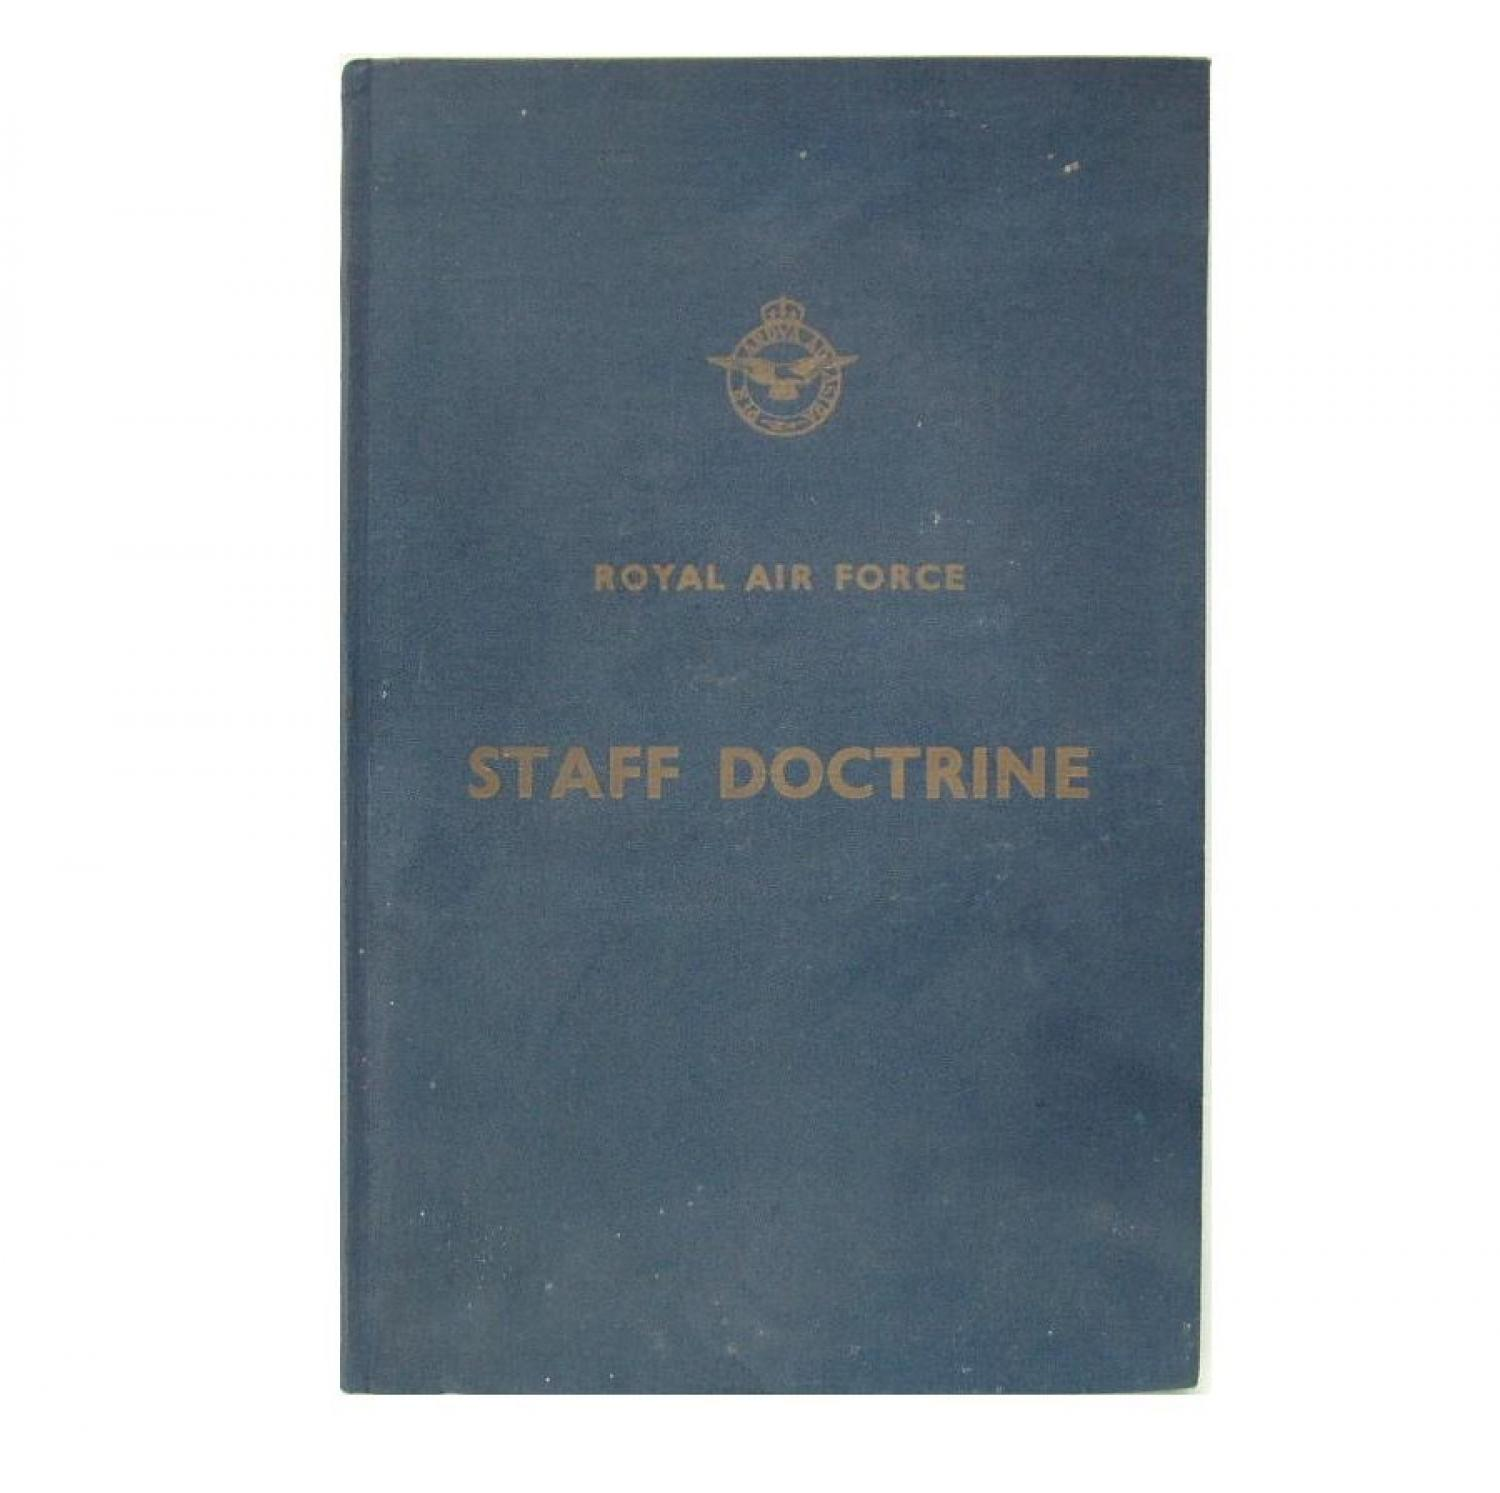 Royal Air Force Staff Doctrine, 1947